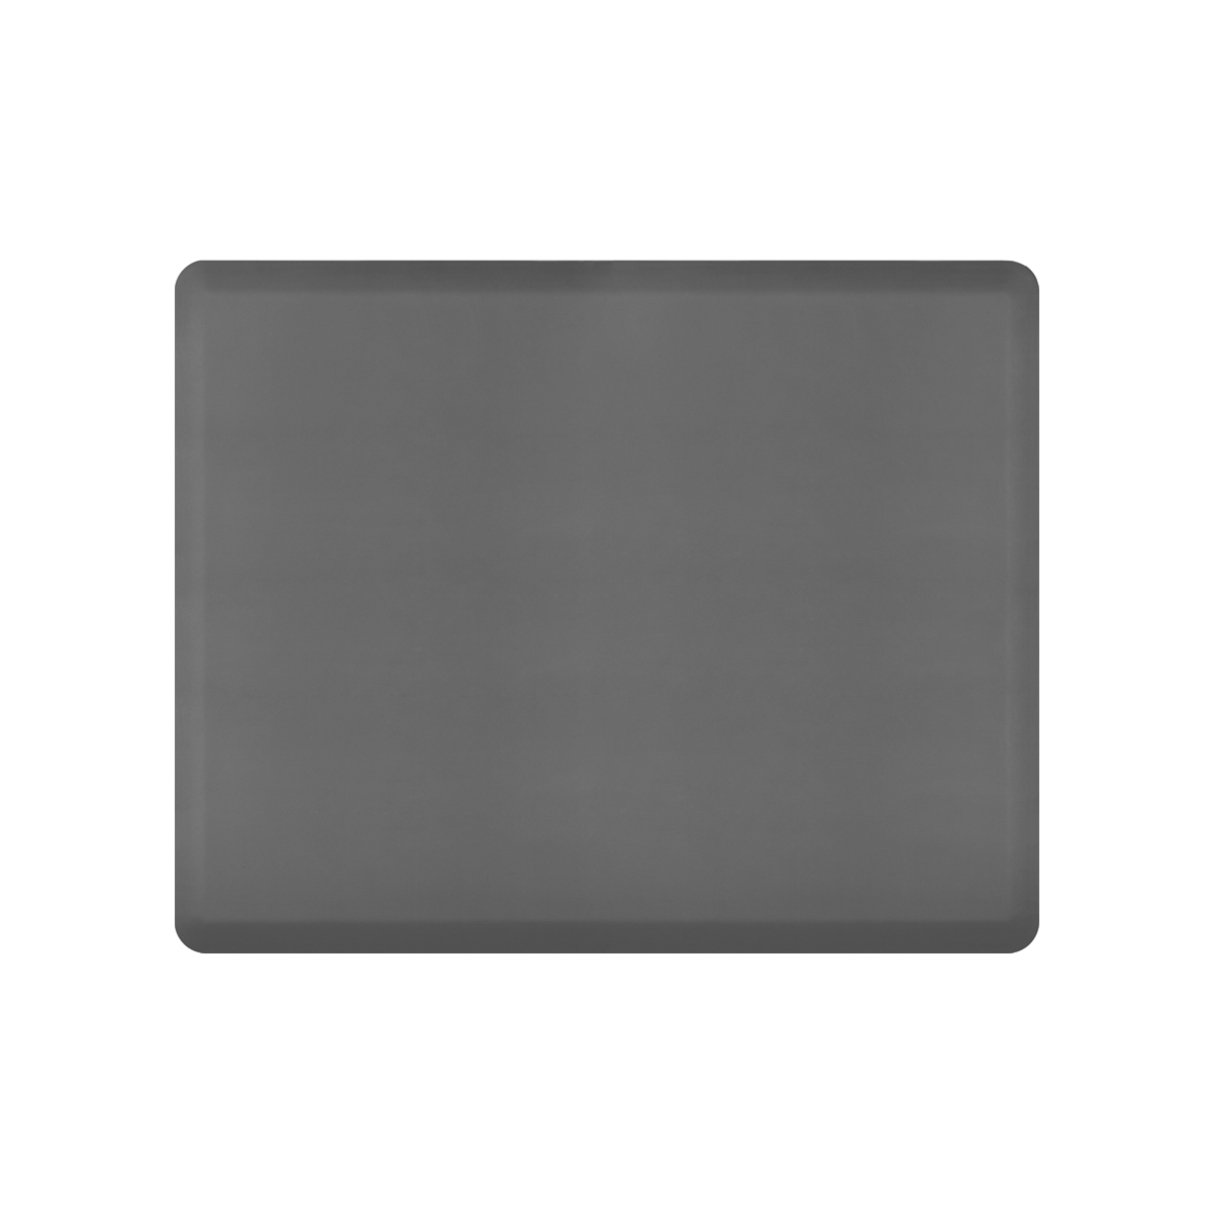 Wellnessmats 5 ft. x 4 ft. Mat (Gray)